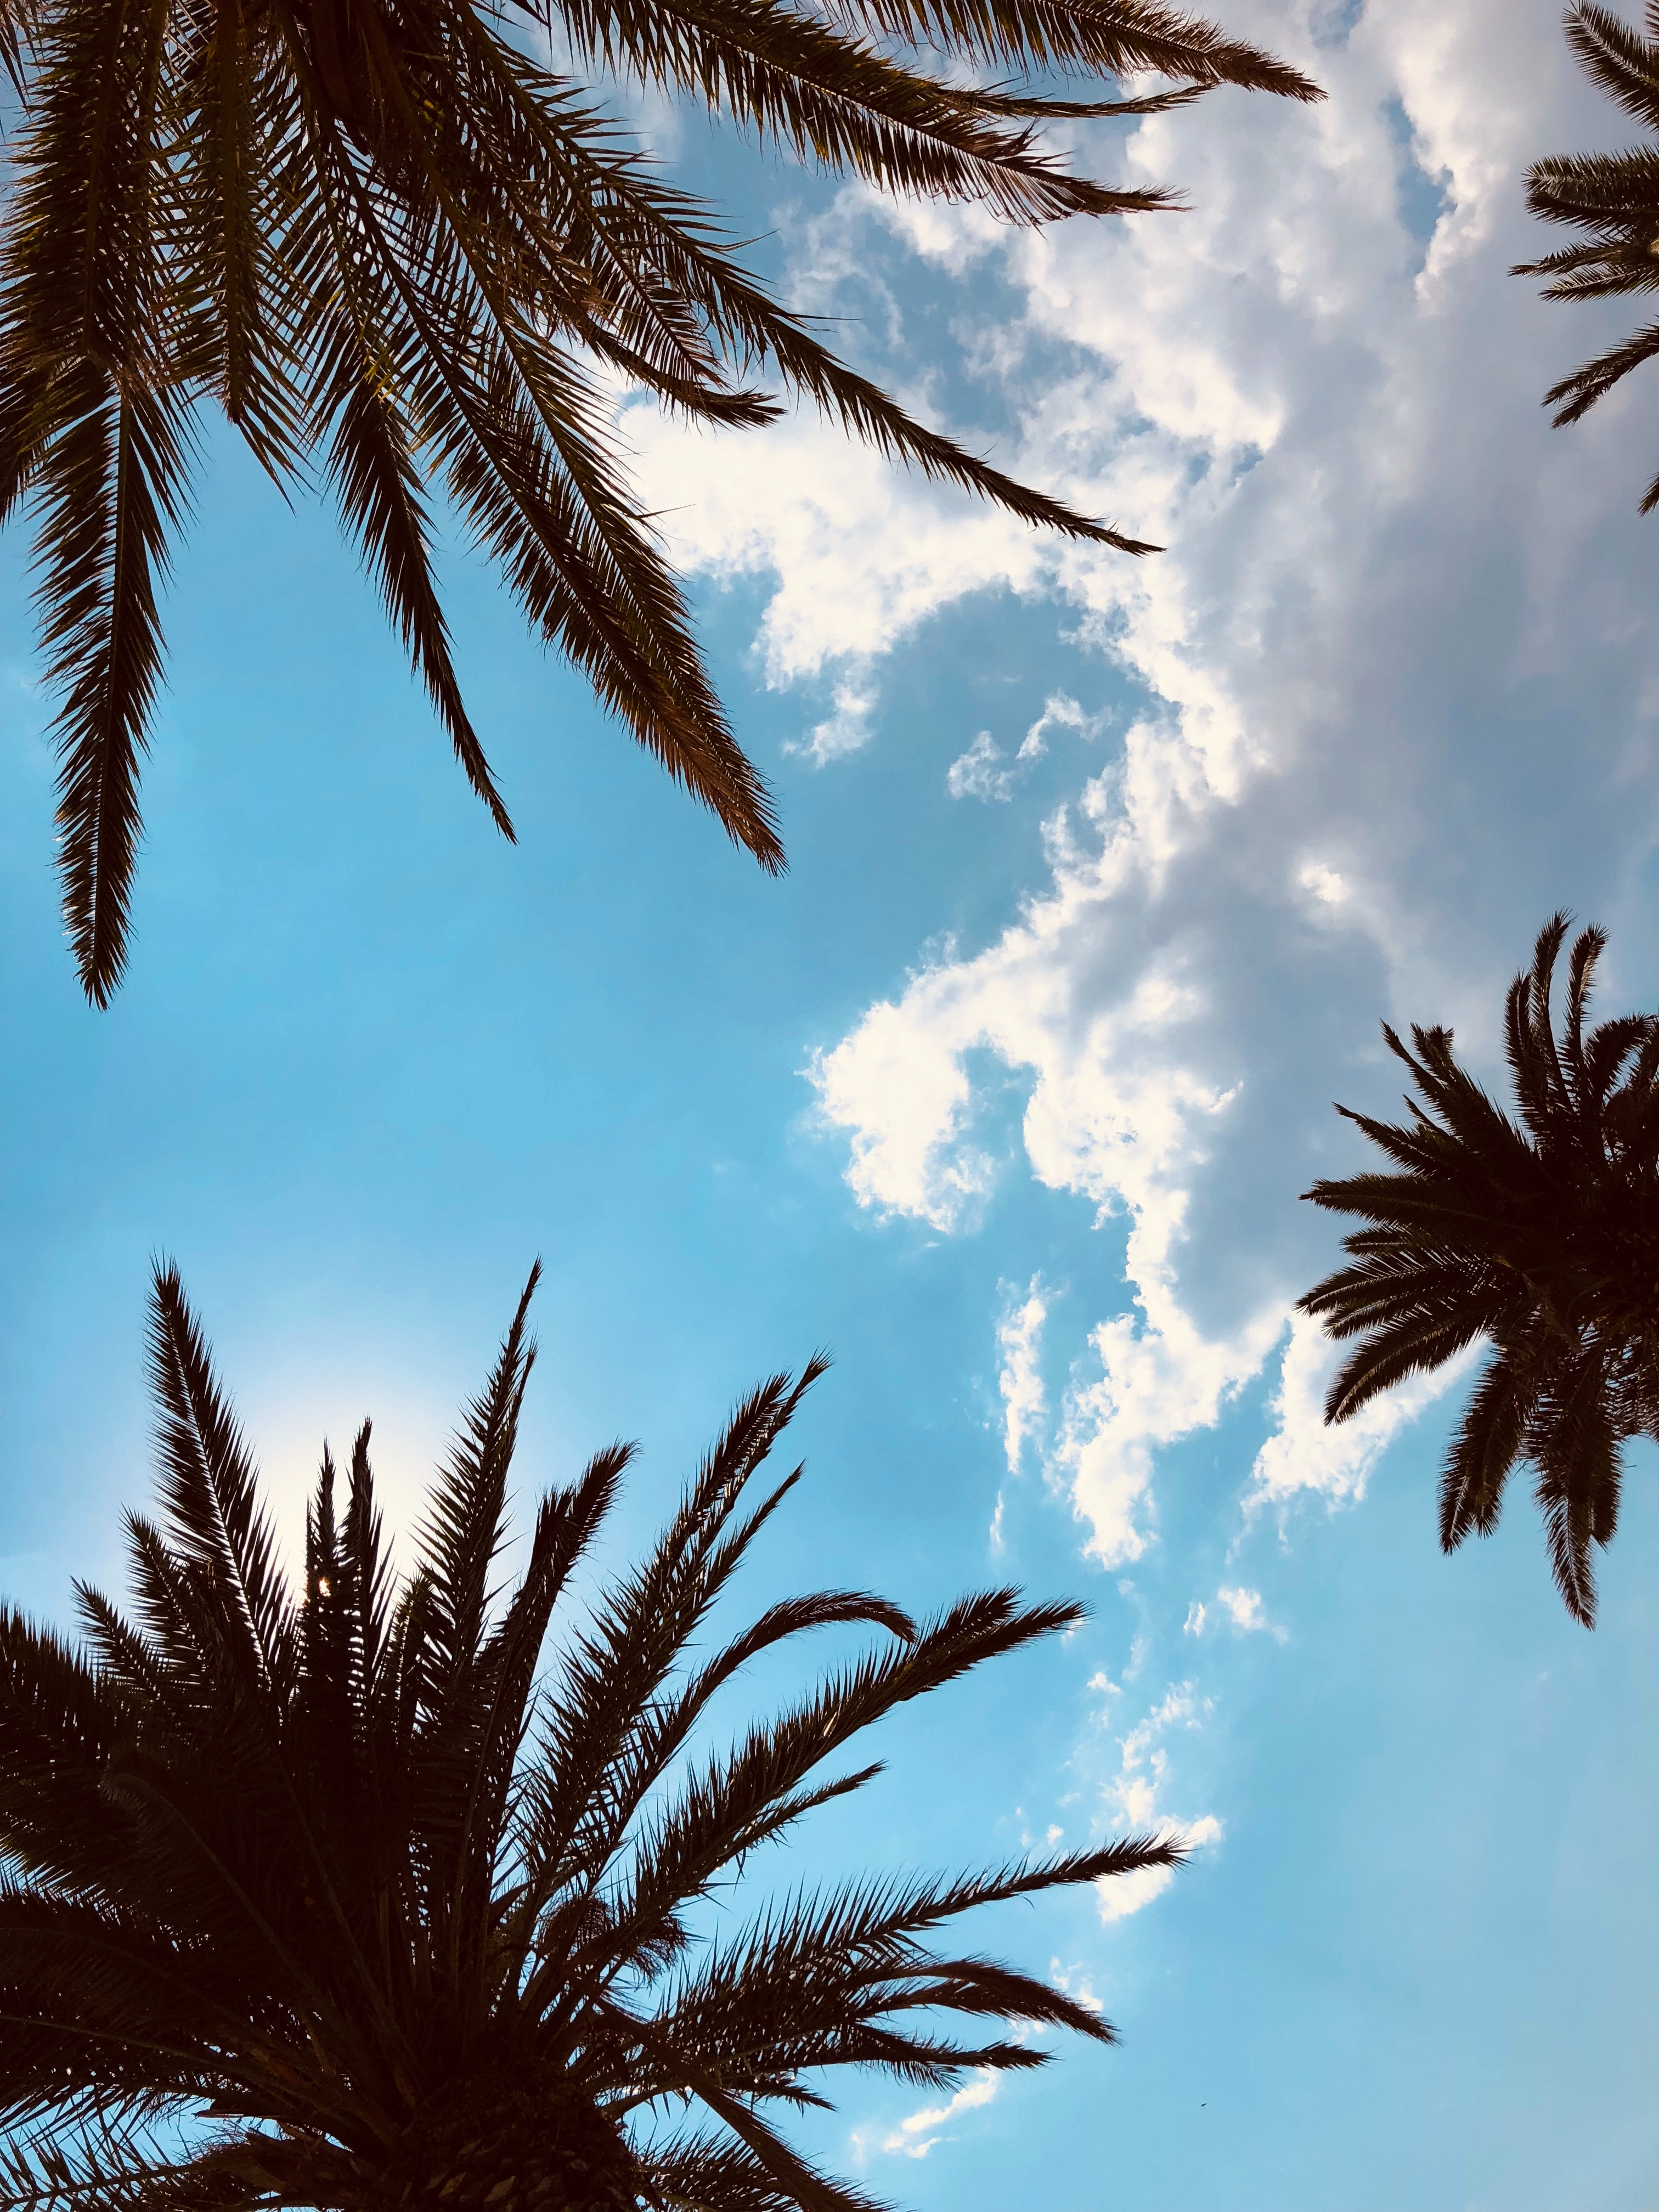 80473 download wallpaper Nature, Bottom View, Branches, Sky, Tropics, Leaves, Palms screensavers and pictures for free